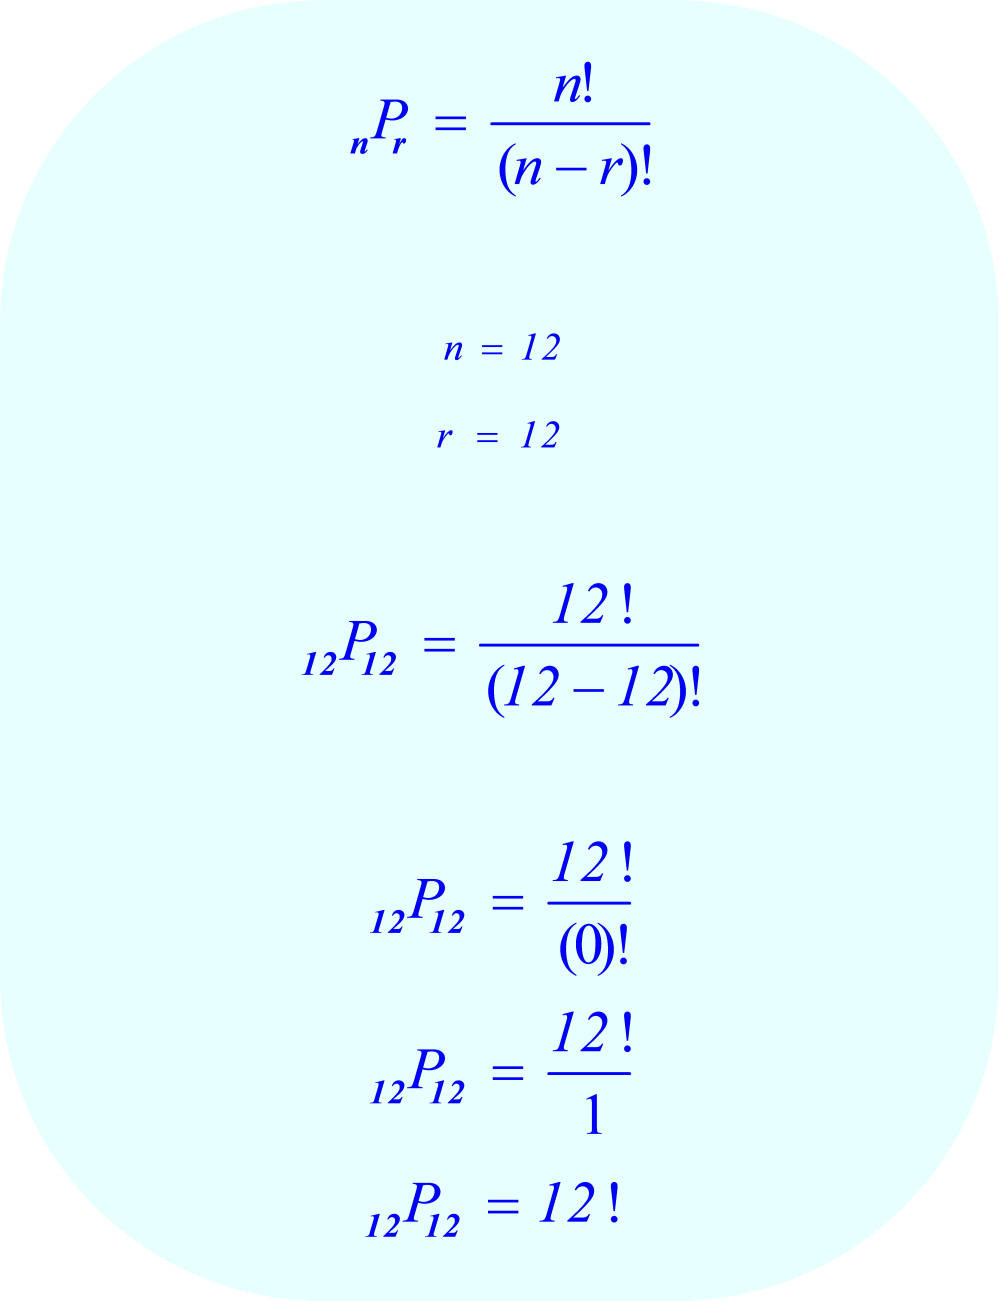 Calculate permutations when n = 12 and r = 12